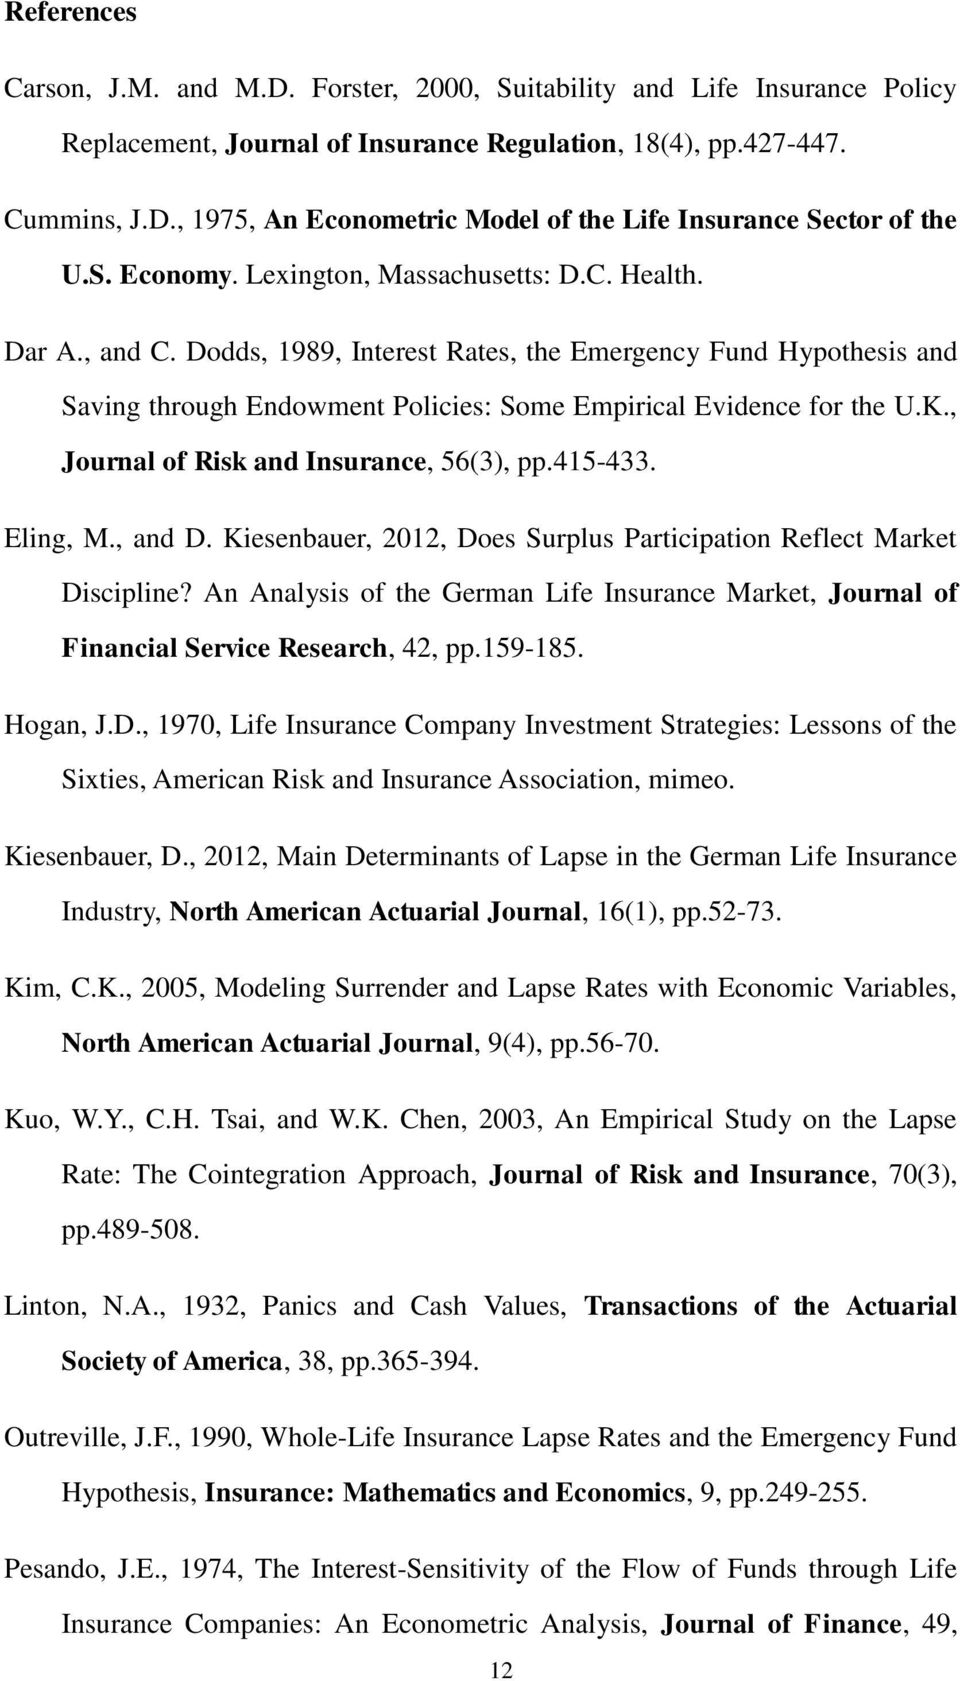 , Journal of Risk and Insurance, 56(3), pp.415-433. Eling, M., and D. Kiesenbauer, 2012, Does Surplus Participation Reflect Market Discipline?